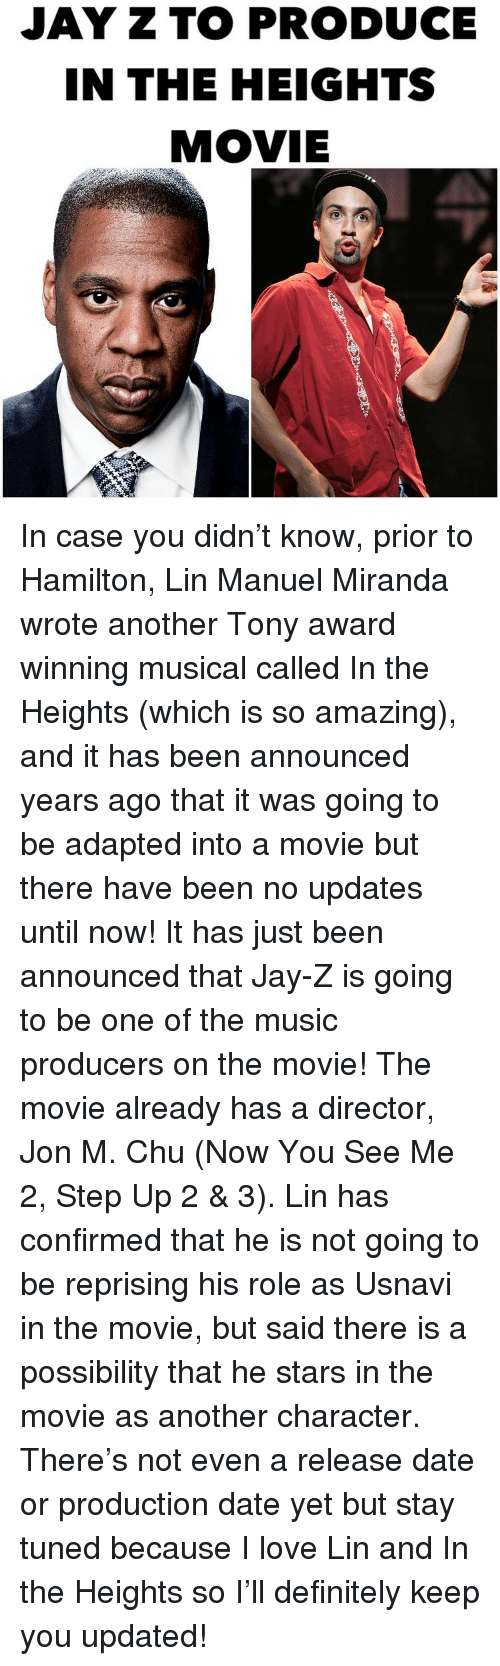 Now you see me 2 release date in Australia